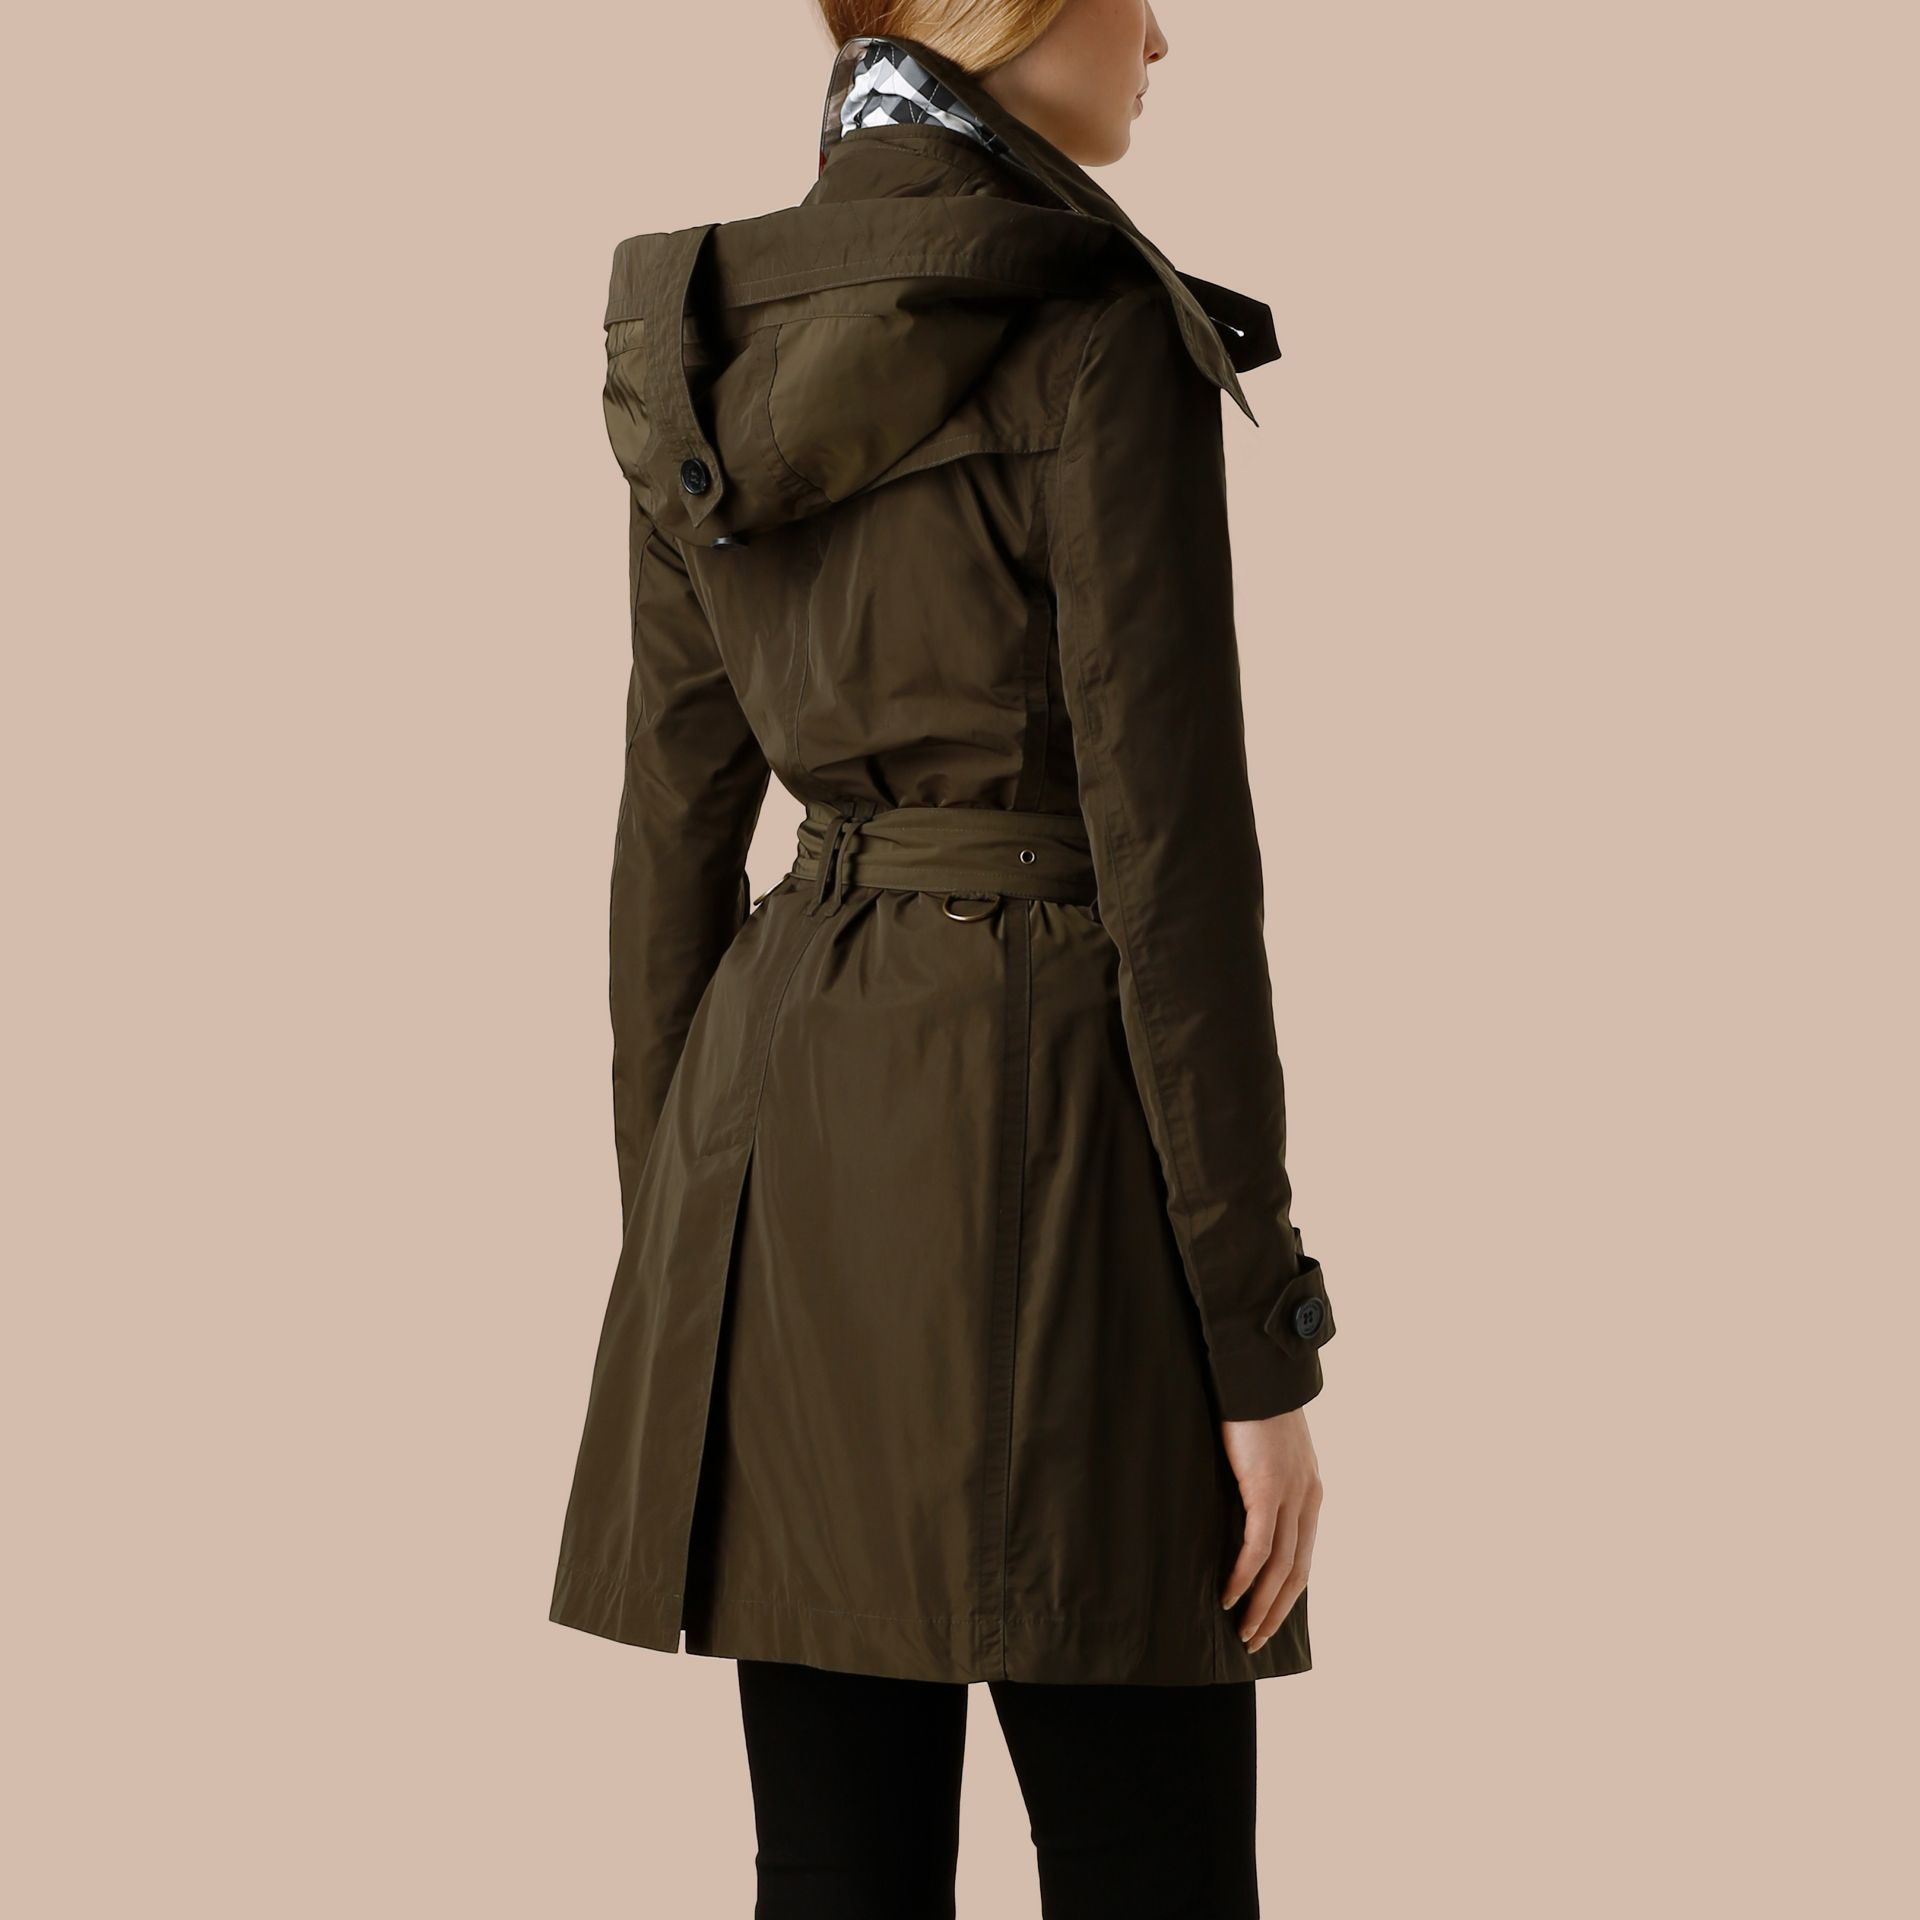 Dark olive Taffeta Trench Coat with Detachable Hood Dark Olive - immagine della galleria 3